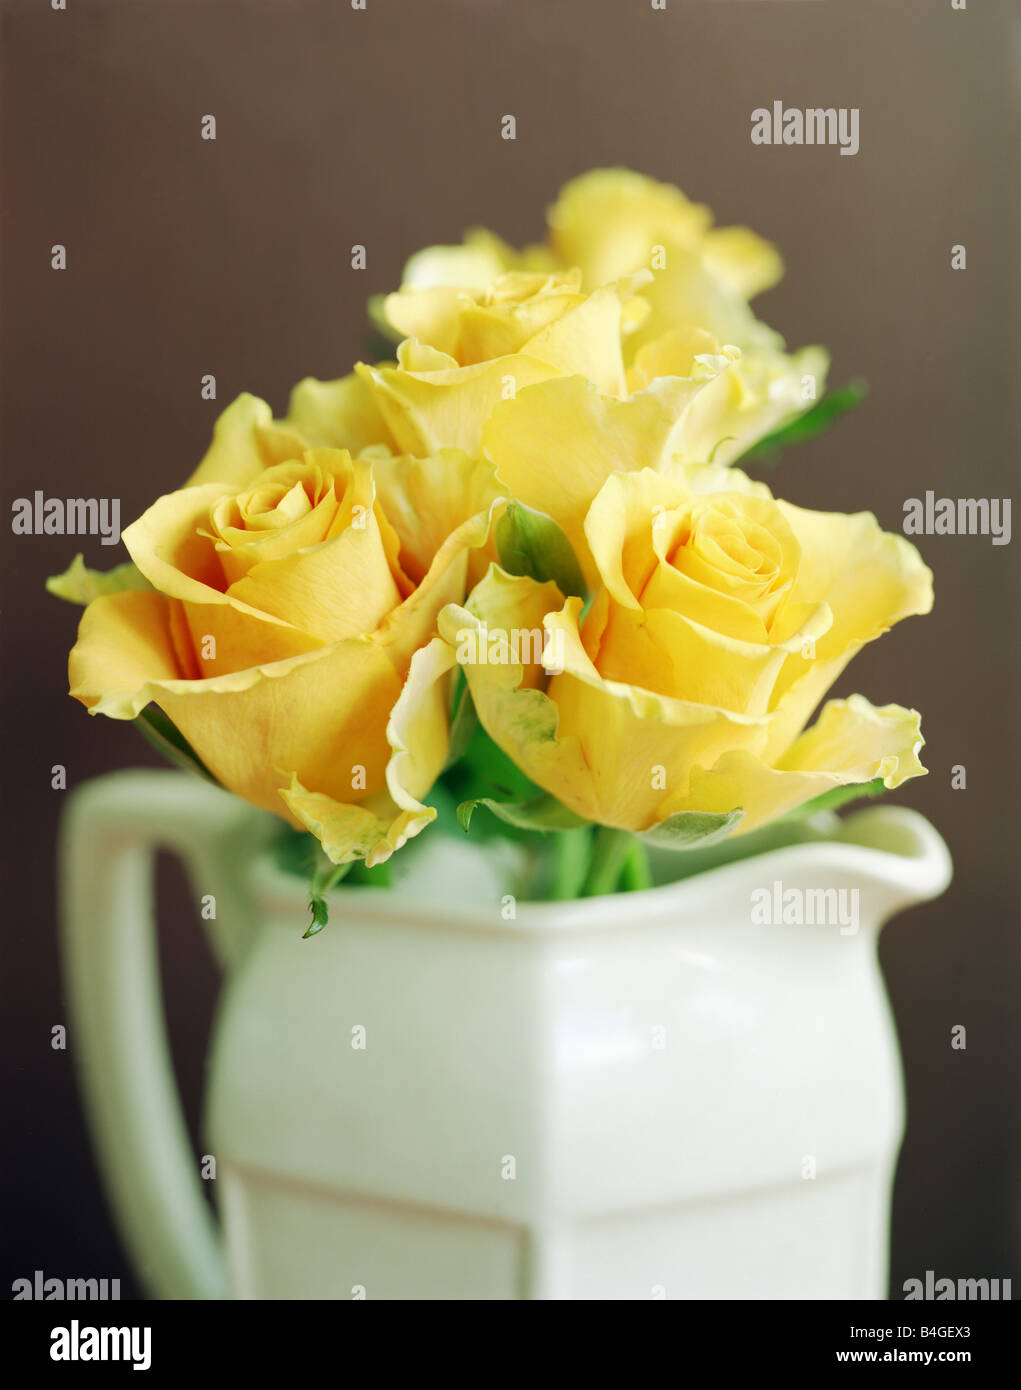 yellow roses in white jug close up - Stock Image